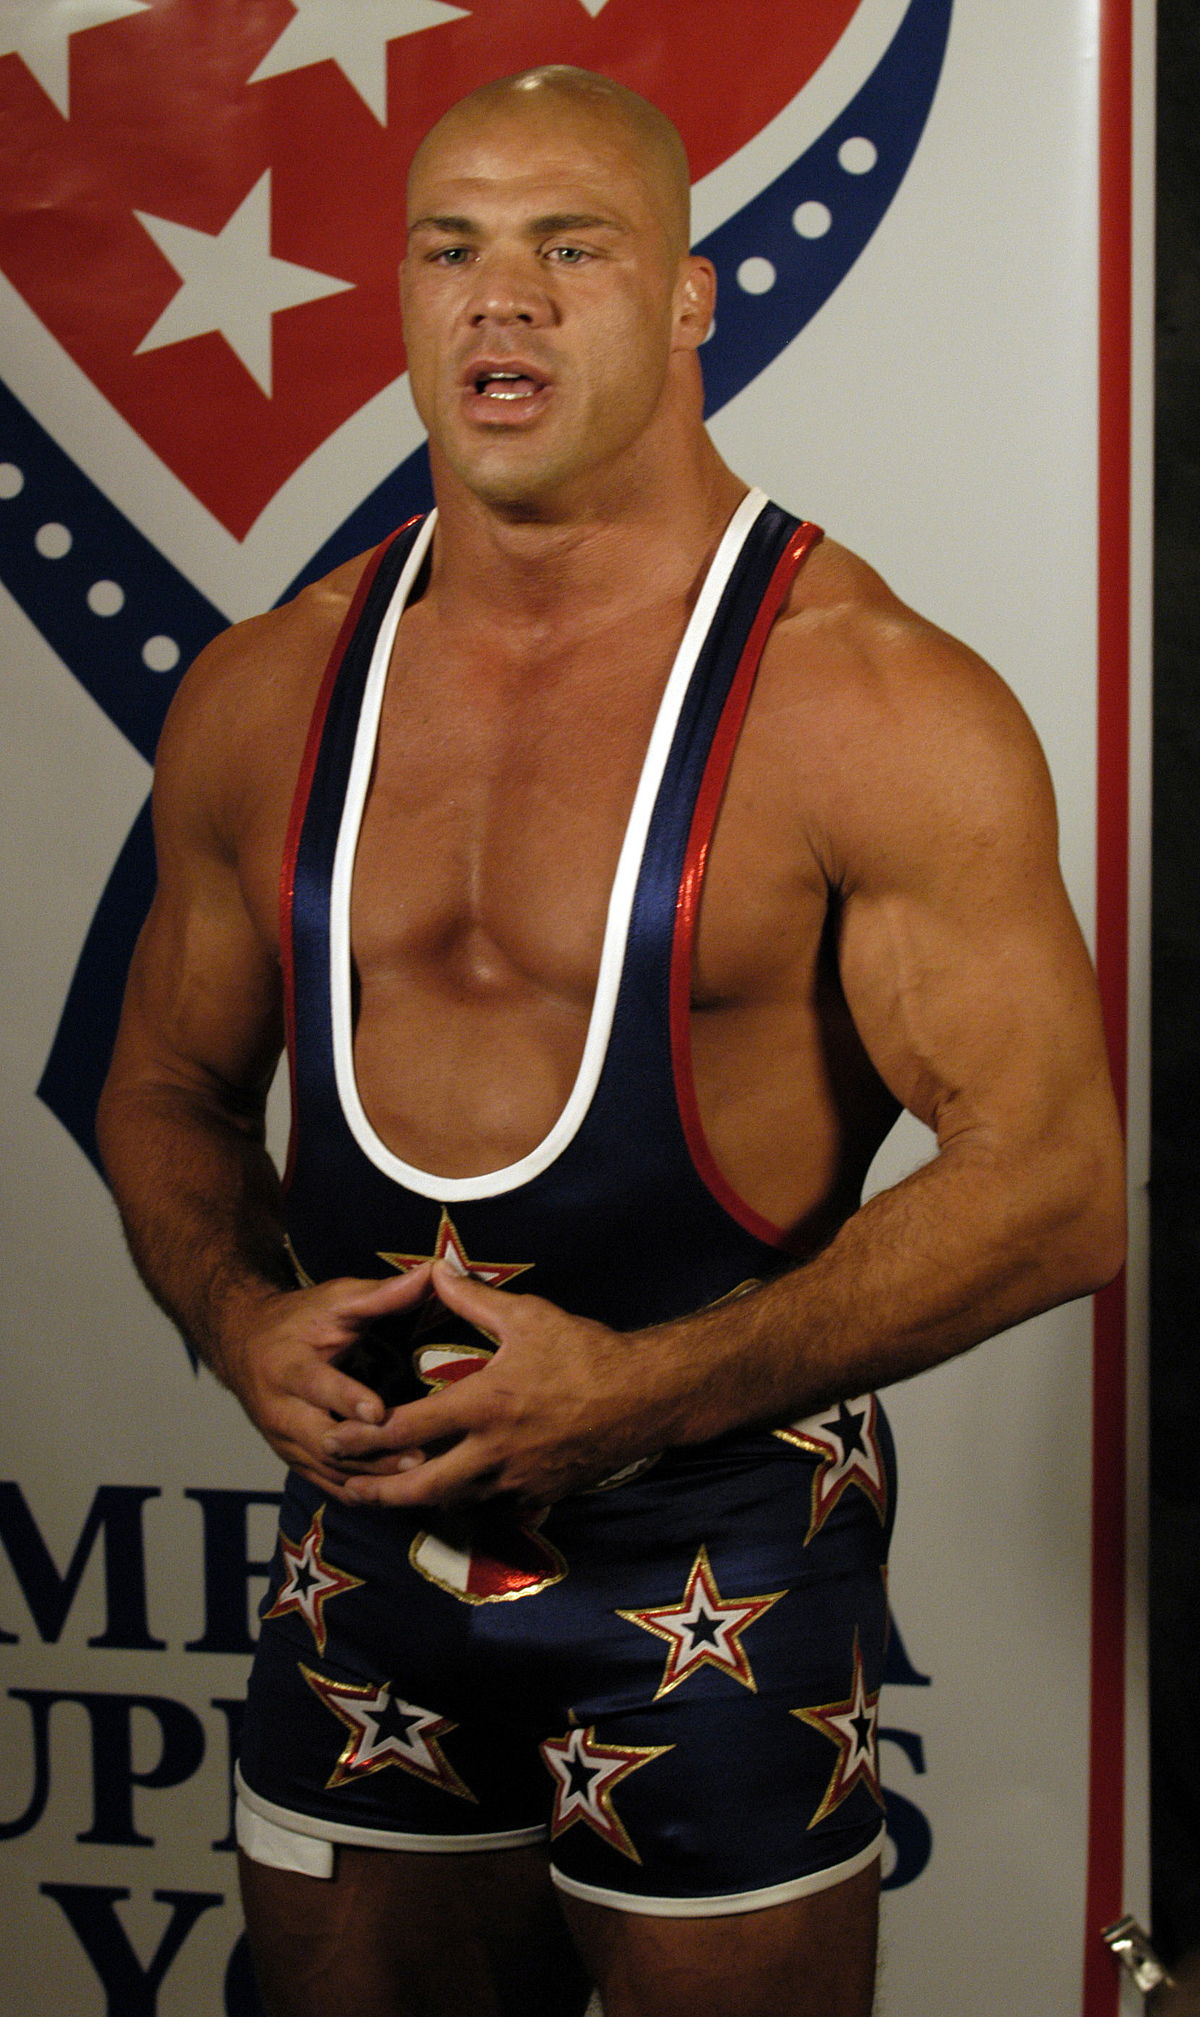 Kurt Angle Wikipedia - Famous wwe wrestlers looked completely different